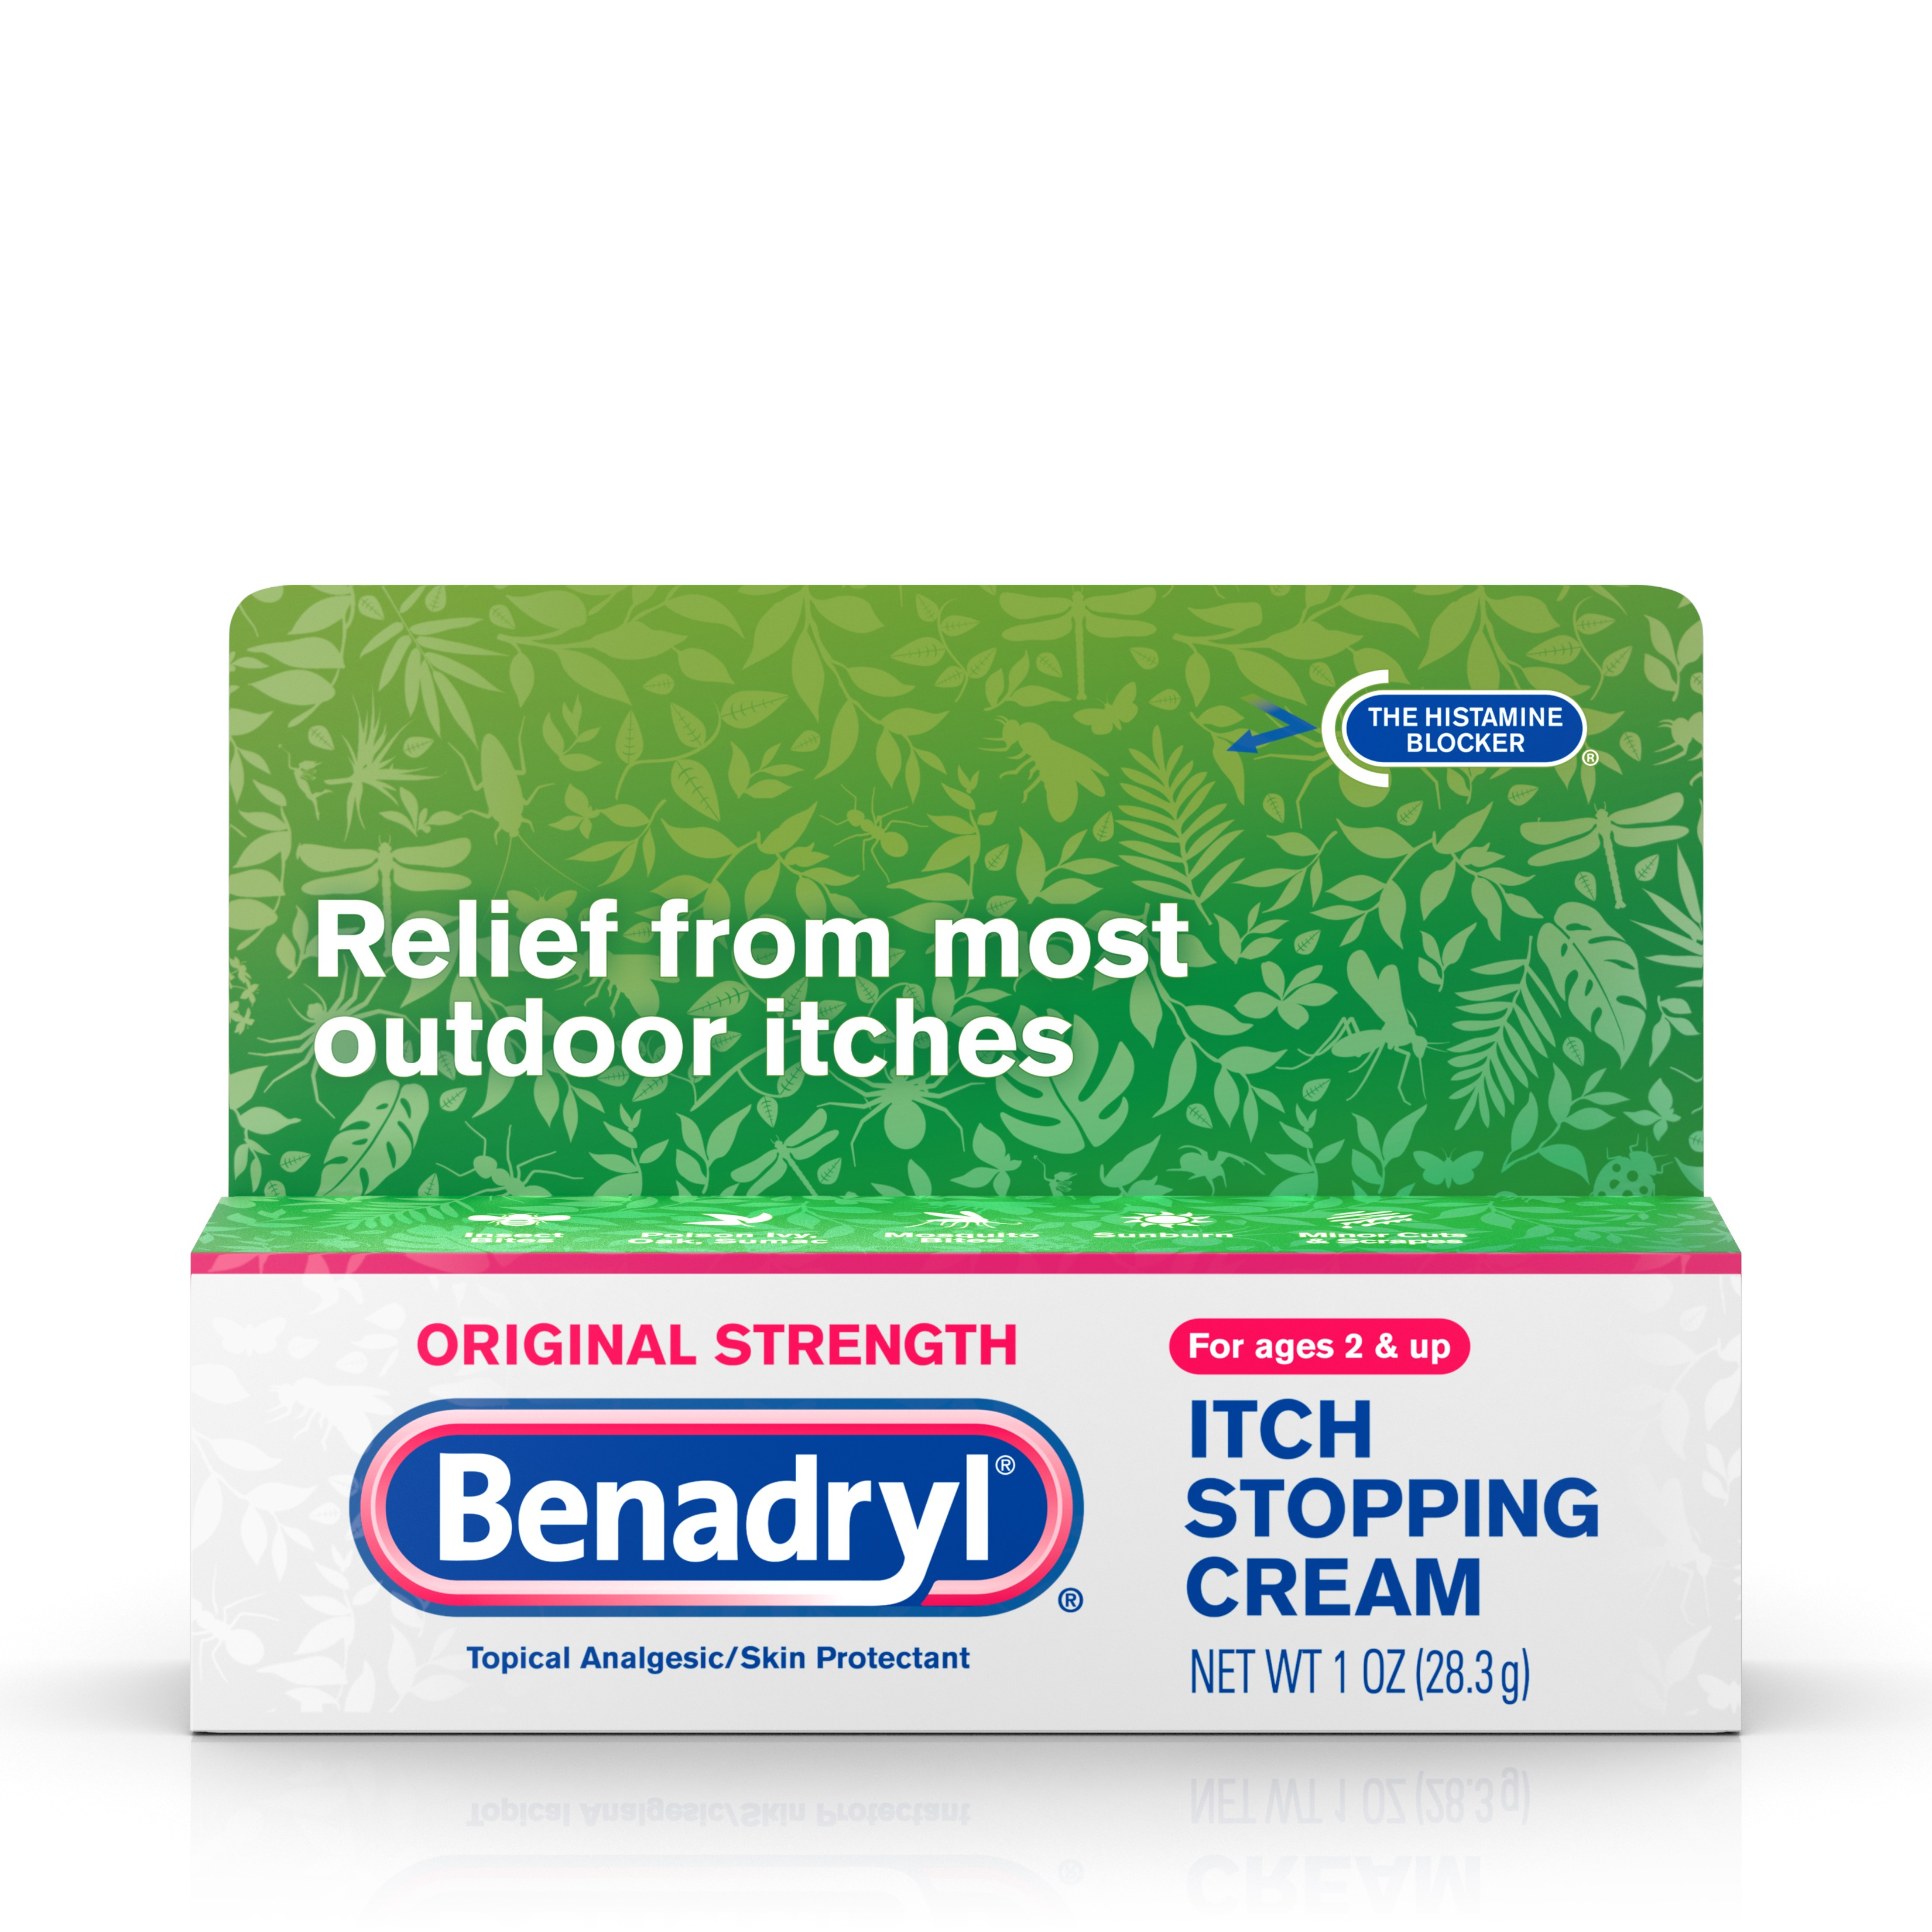 Benadryl Original Strength Itch Relief Cream, Topical Analgesic, 1 oz